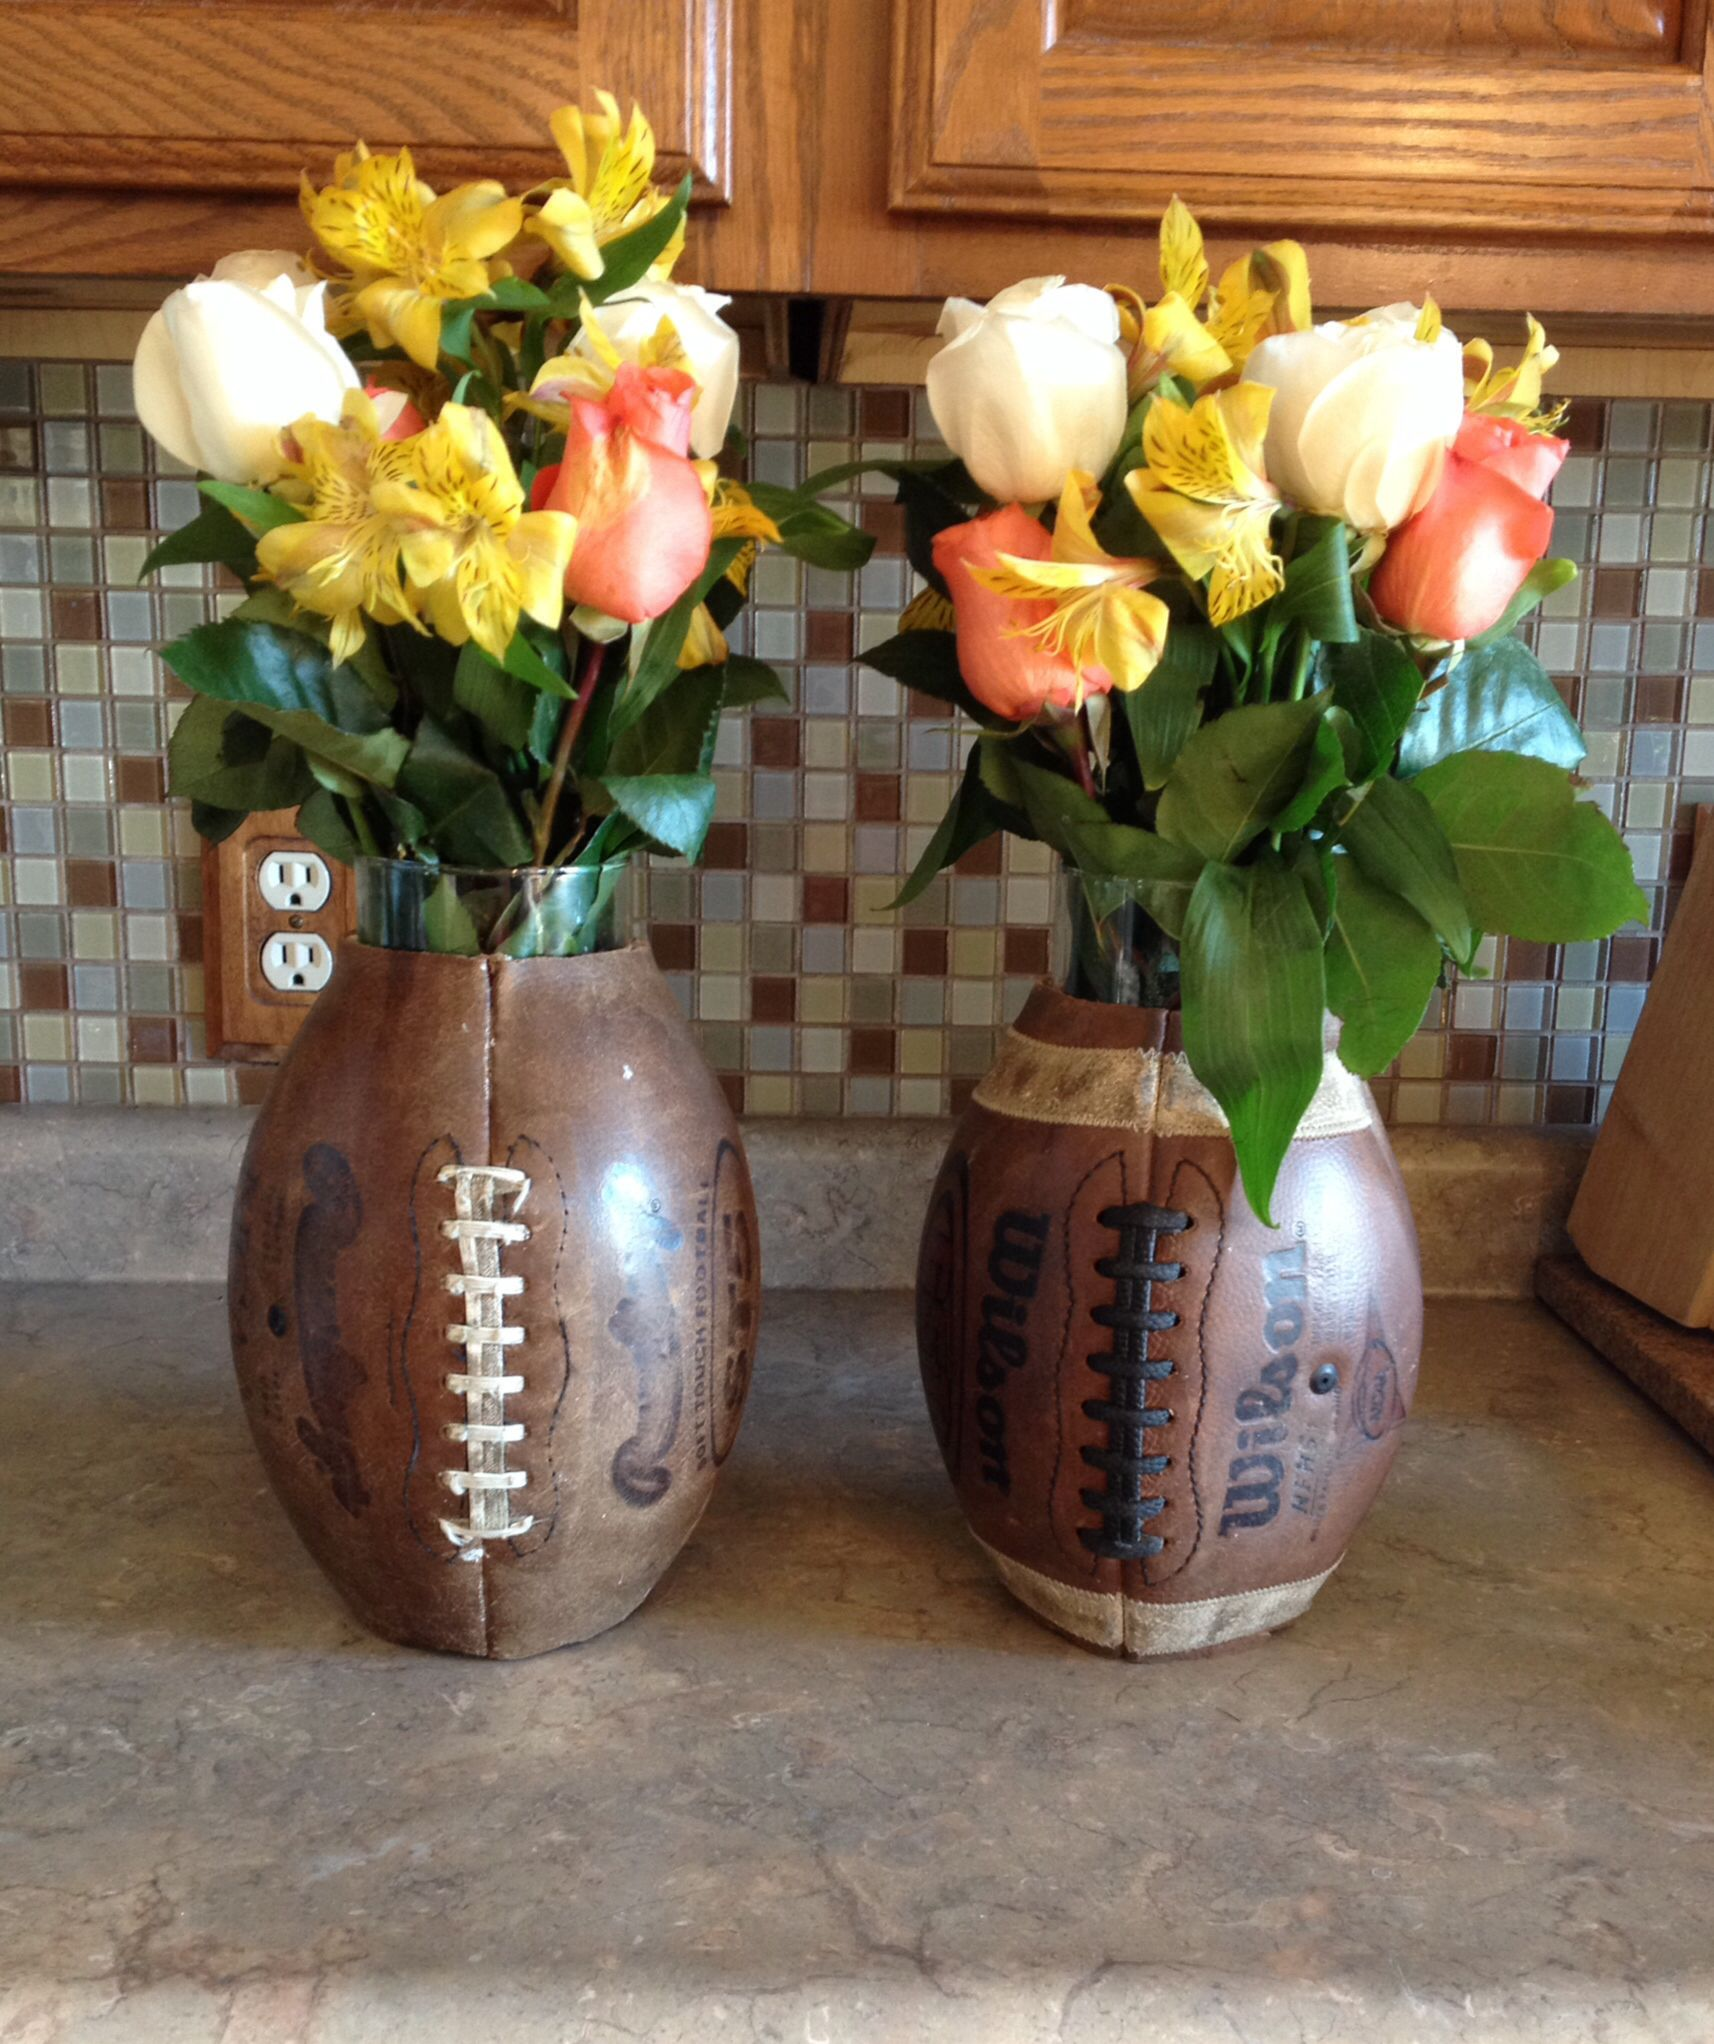 the 25 best football banquet ideas on pinterest football party centerpieces football. Black Bedroom Furniture Sets. Home Design Ideas